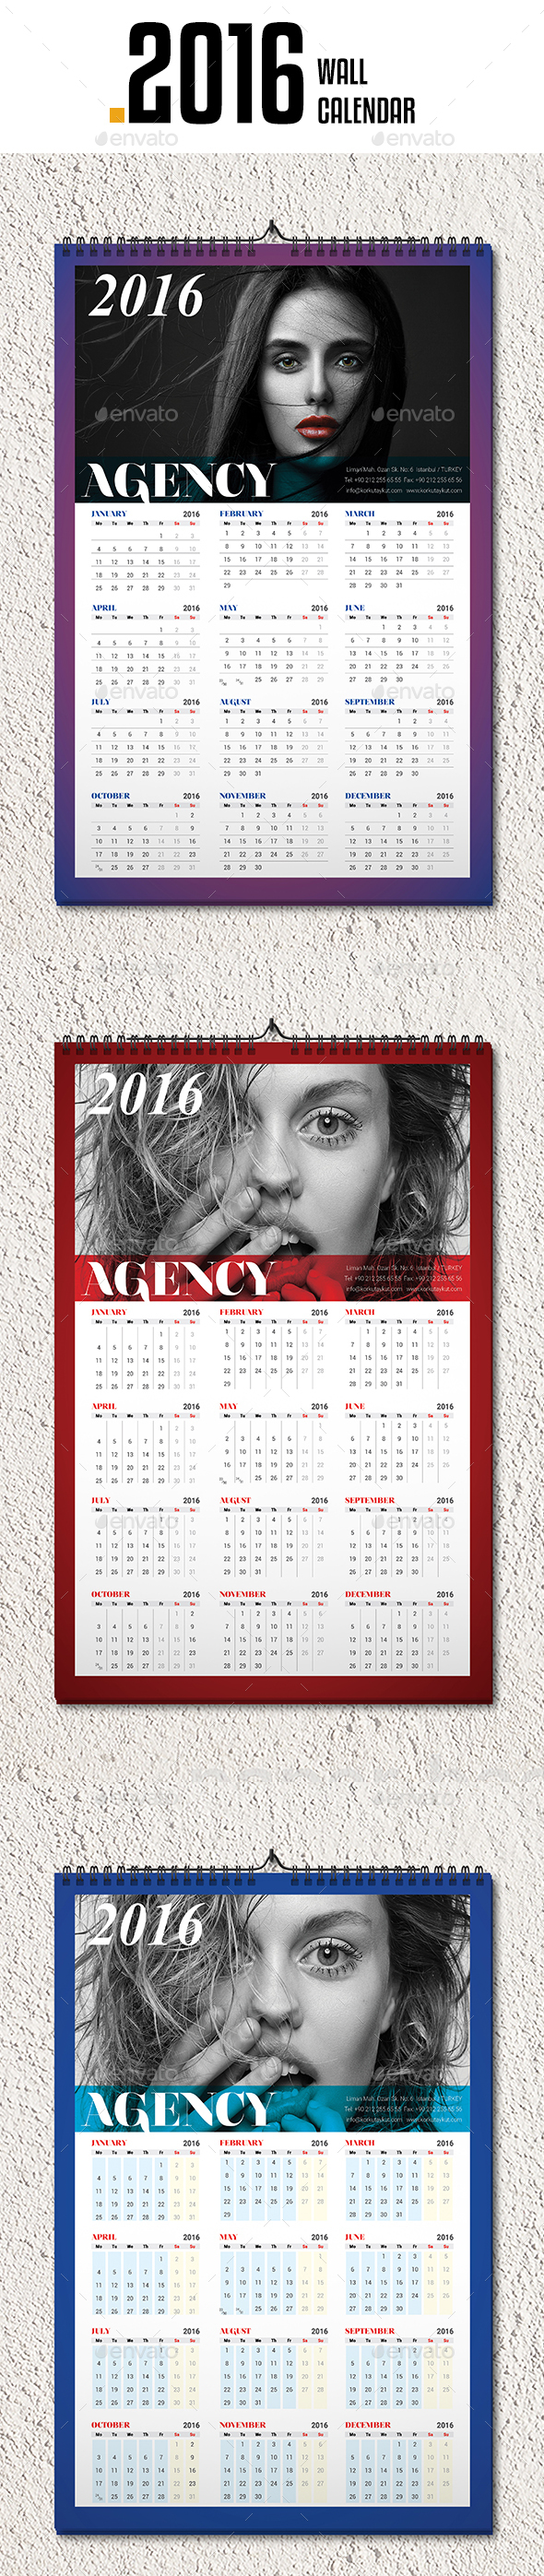 Wall Calendar 2016 v5 - Calendars Stationery